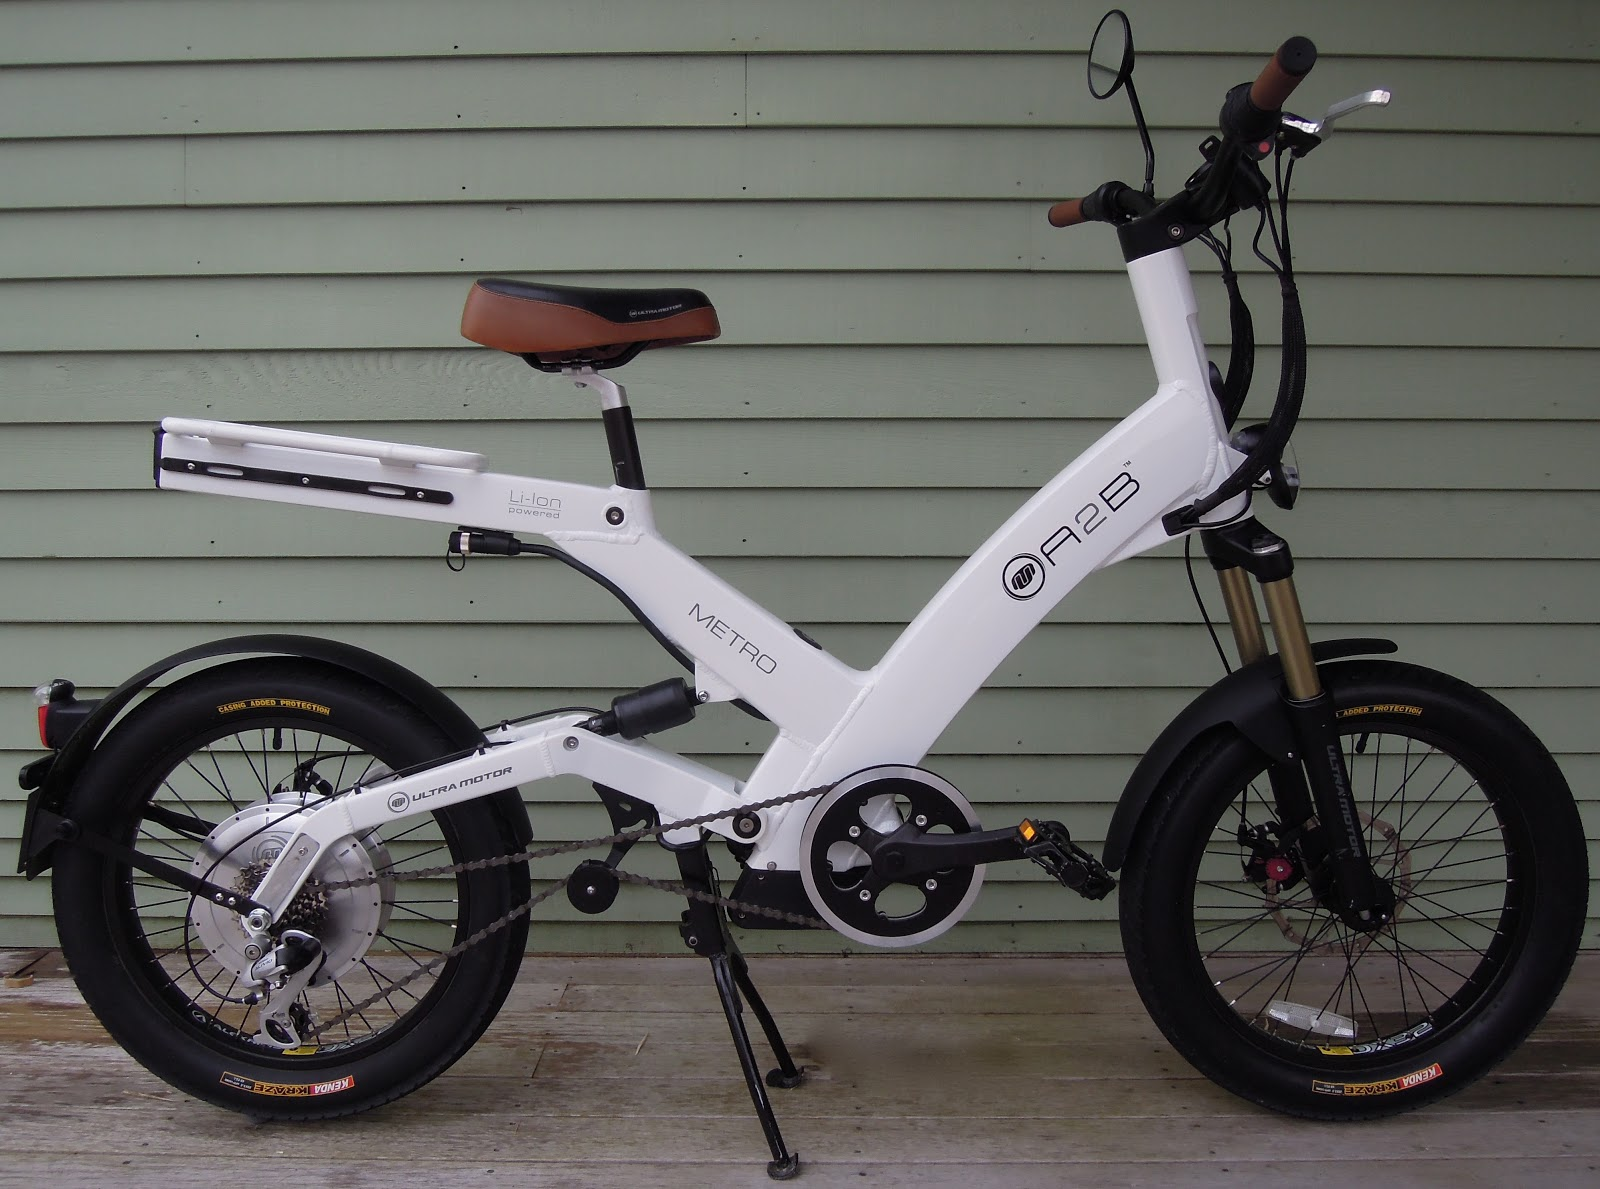 Frame and Wheel Selling Services: 2012 Ultramotor A2B Metro electric ...